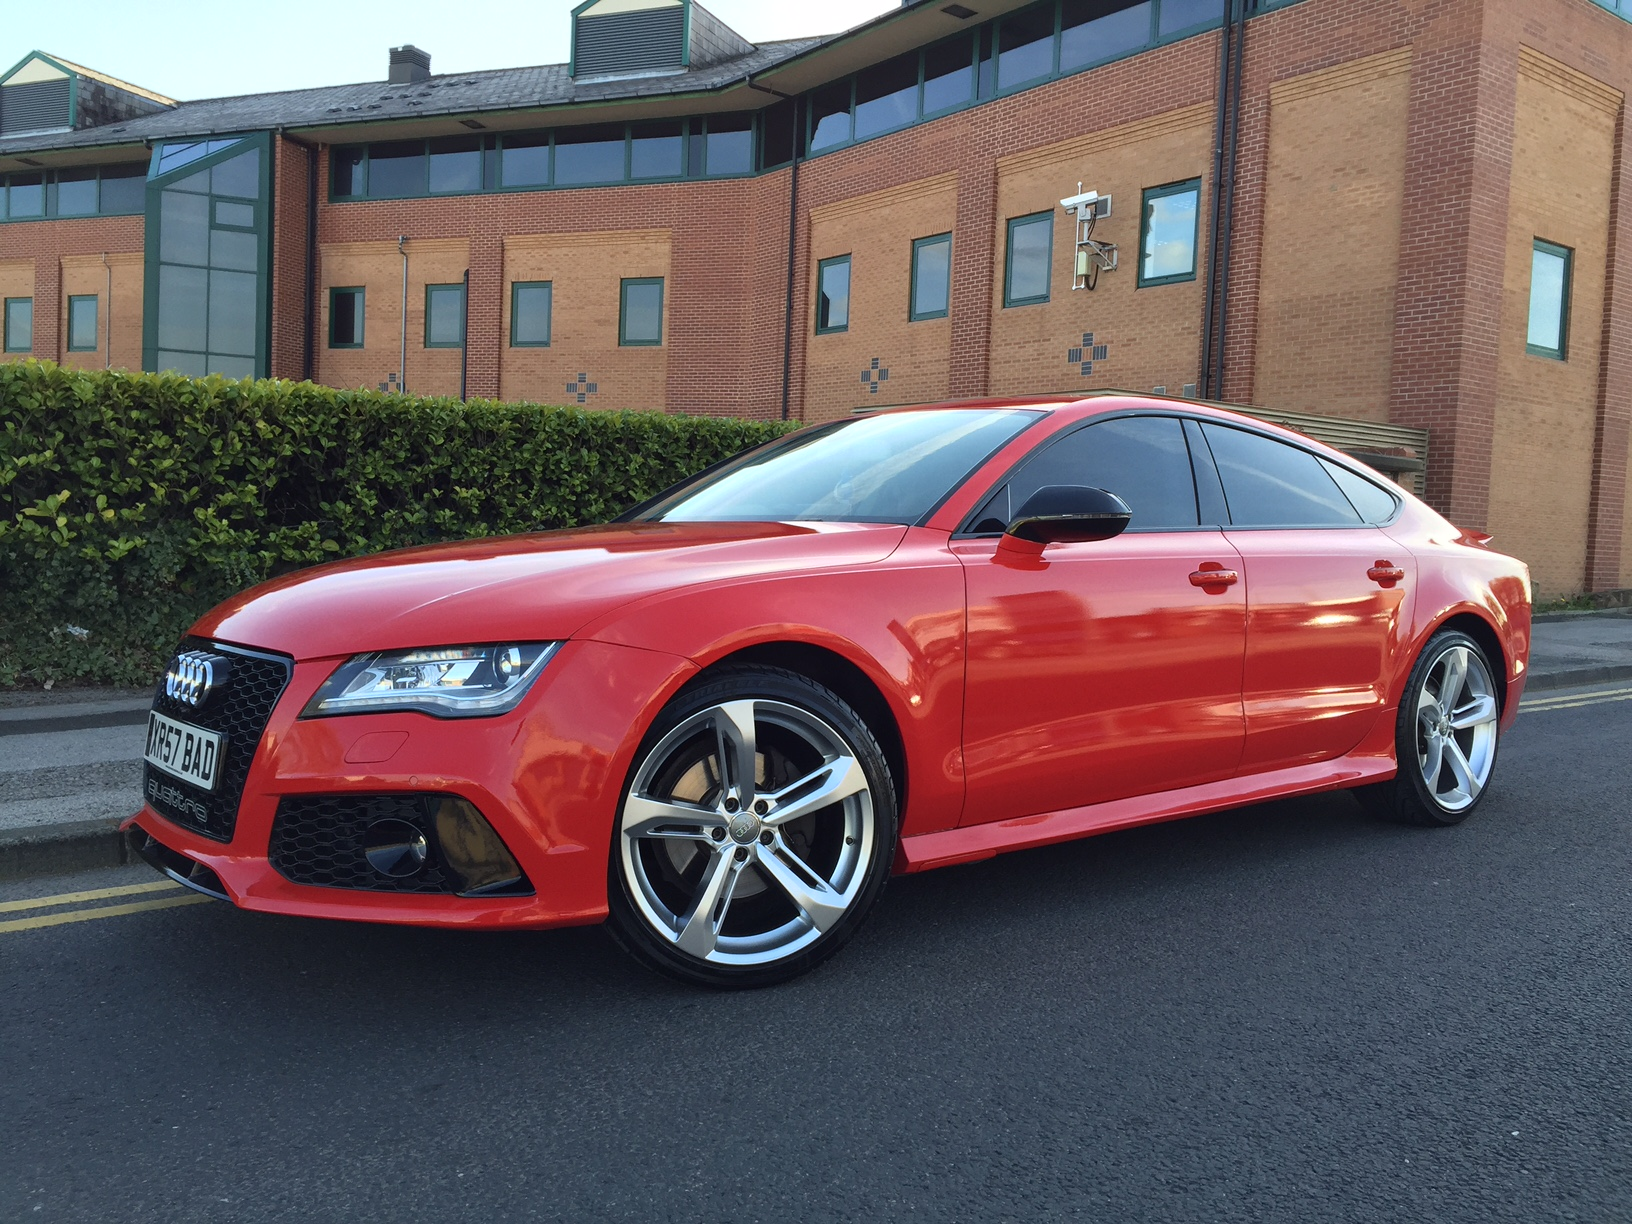 Audi A7 RS7 styling conversion wrapped in red